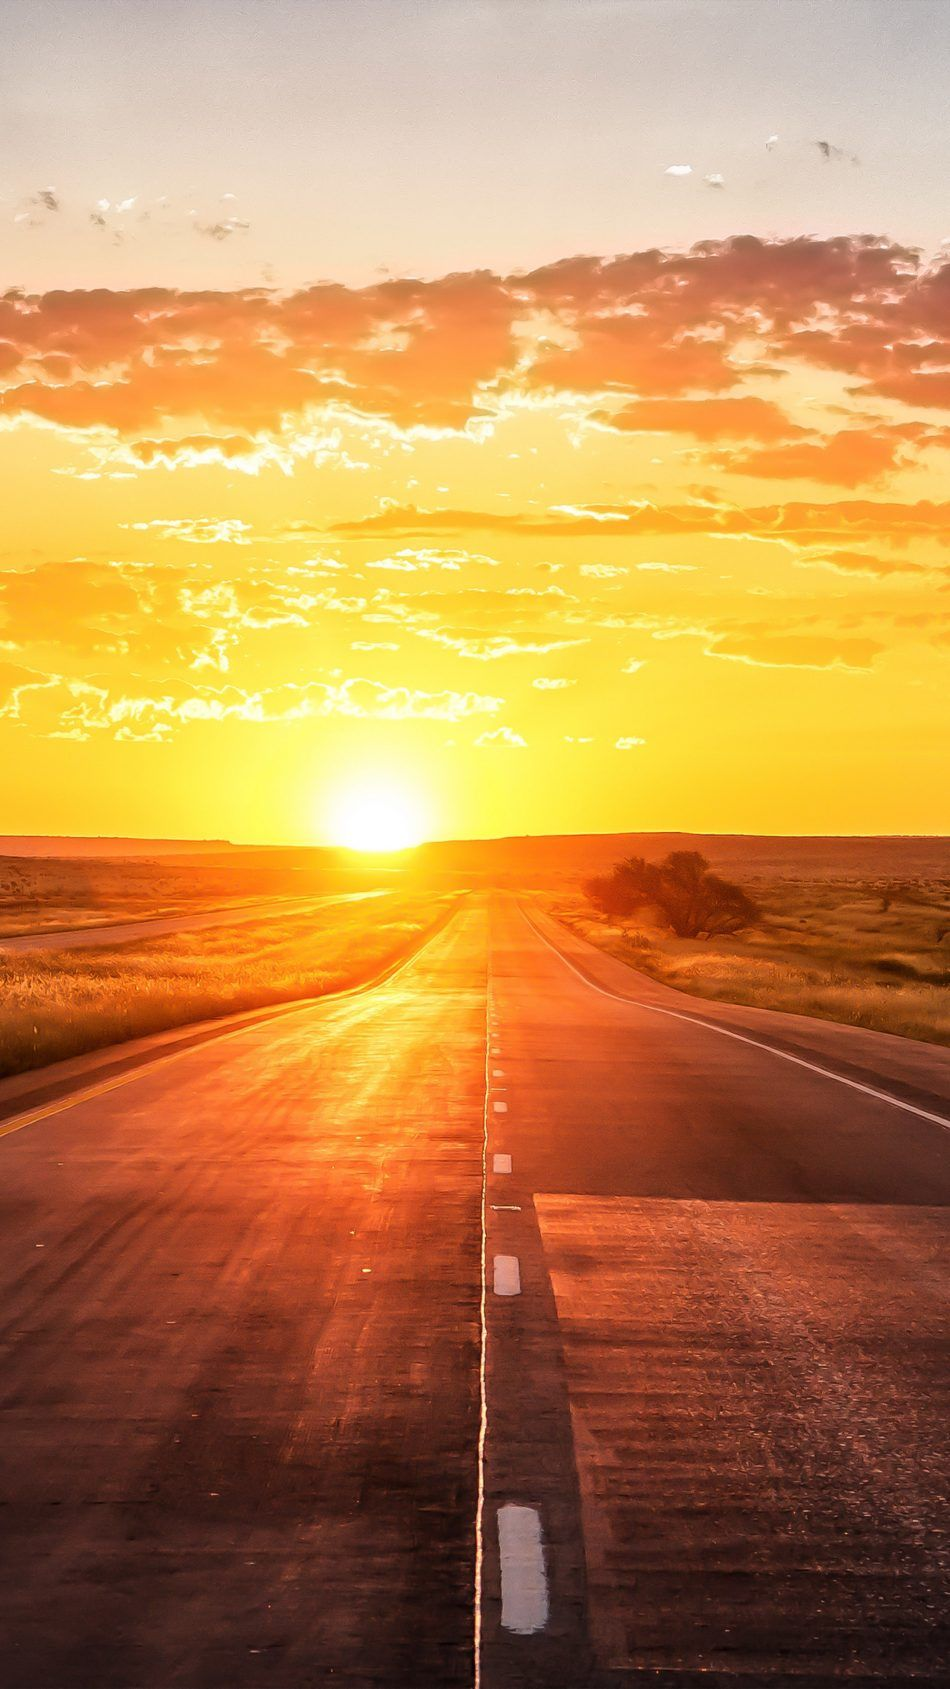 Straight Road Sunset Marking Grass 4k Ultra Hd Mobile Wallpaper Sunset Background Grass Background Cool Backgrounds